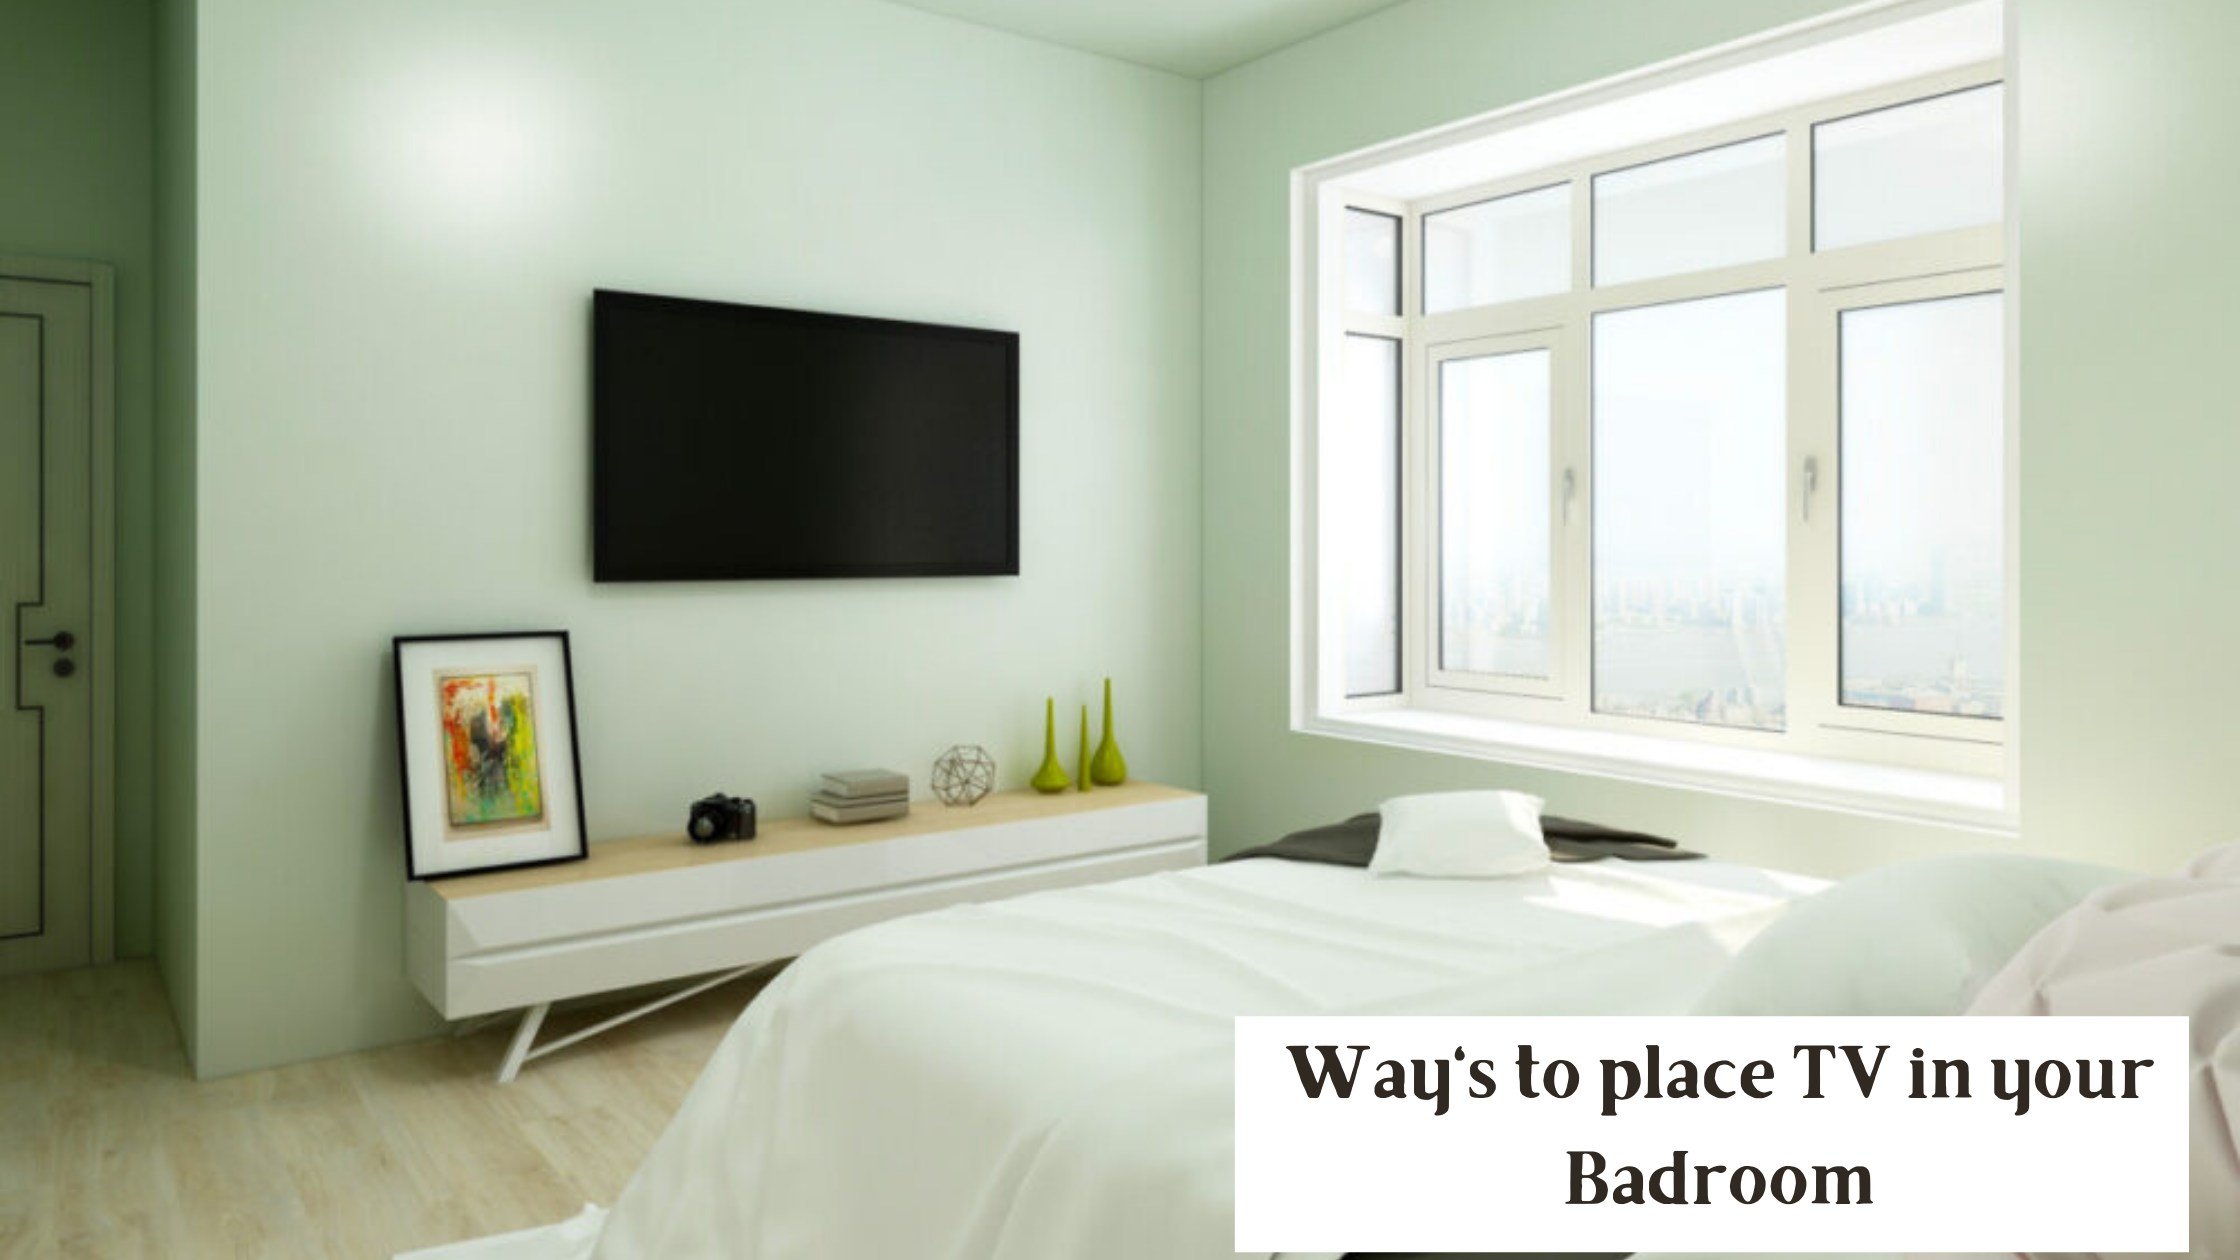 Ways to place TV in your Bedroom